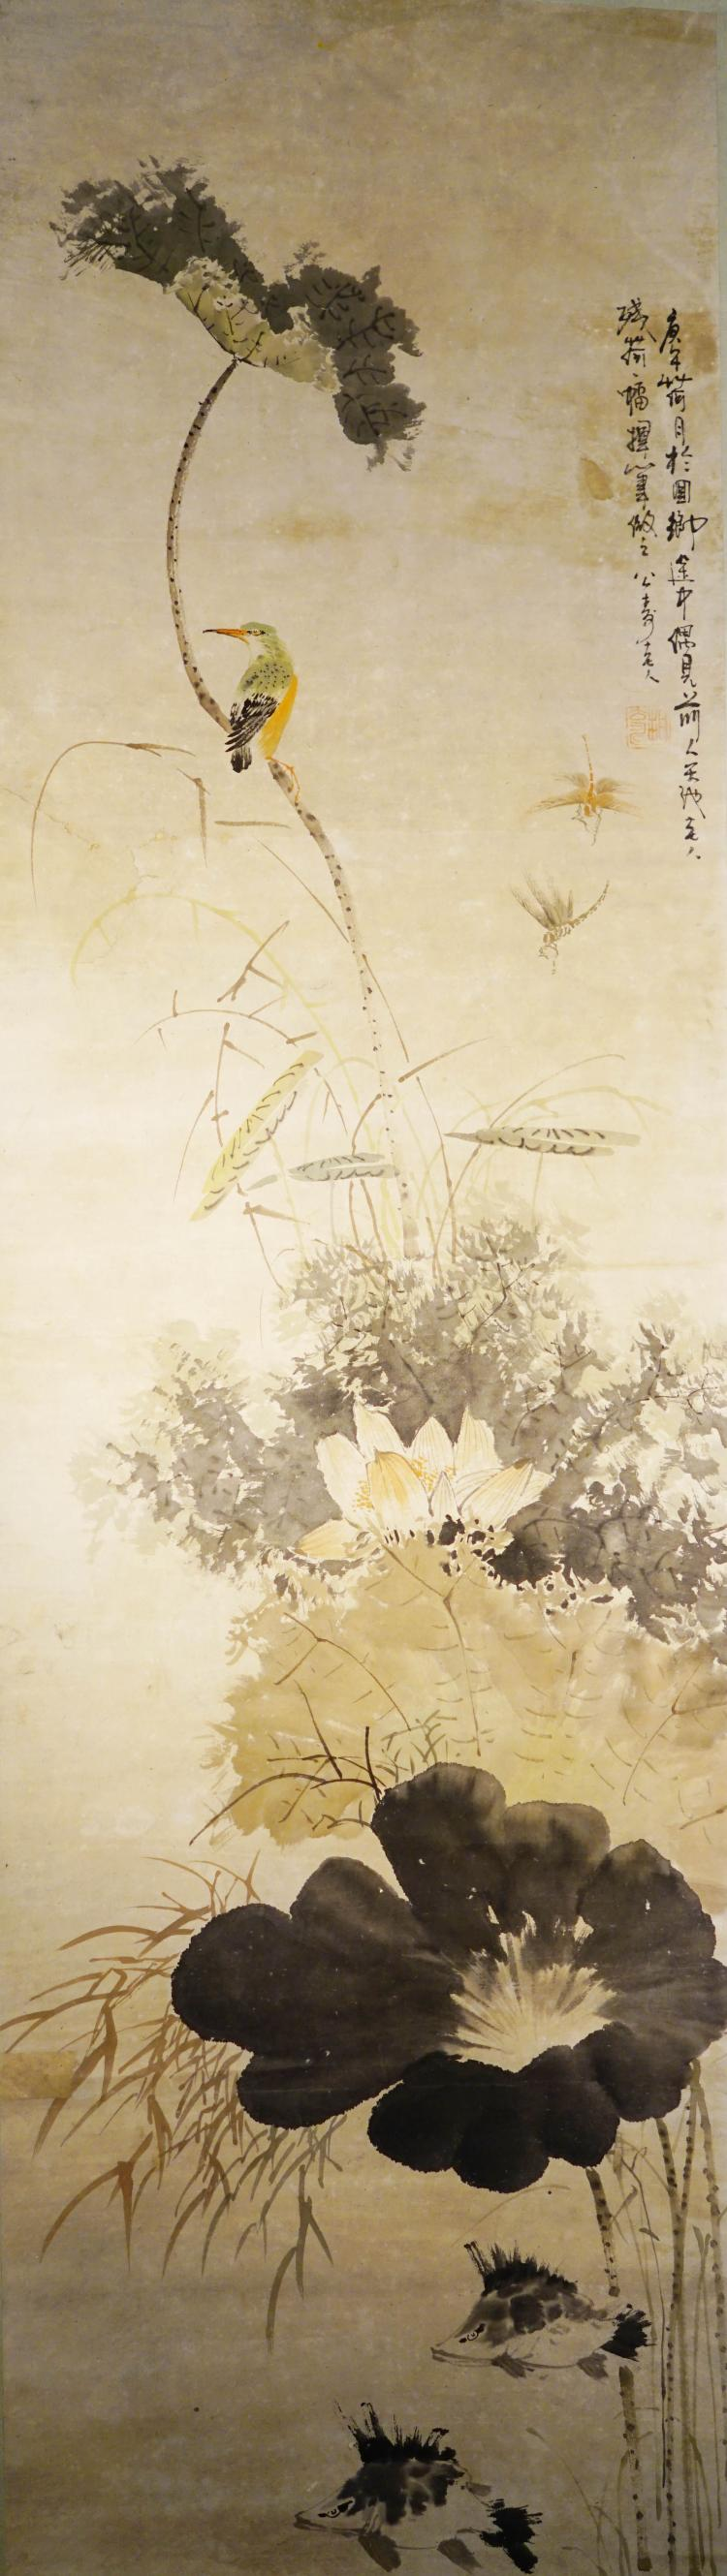 A CHINESE SCROLL PAINTING OF LOTUS